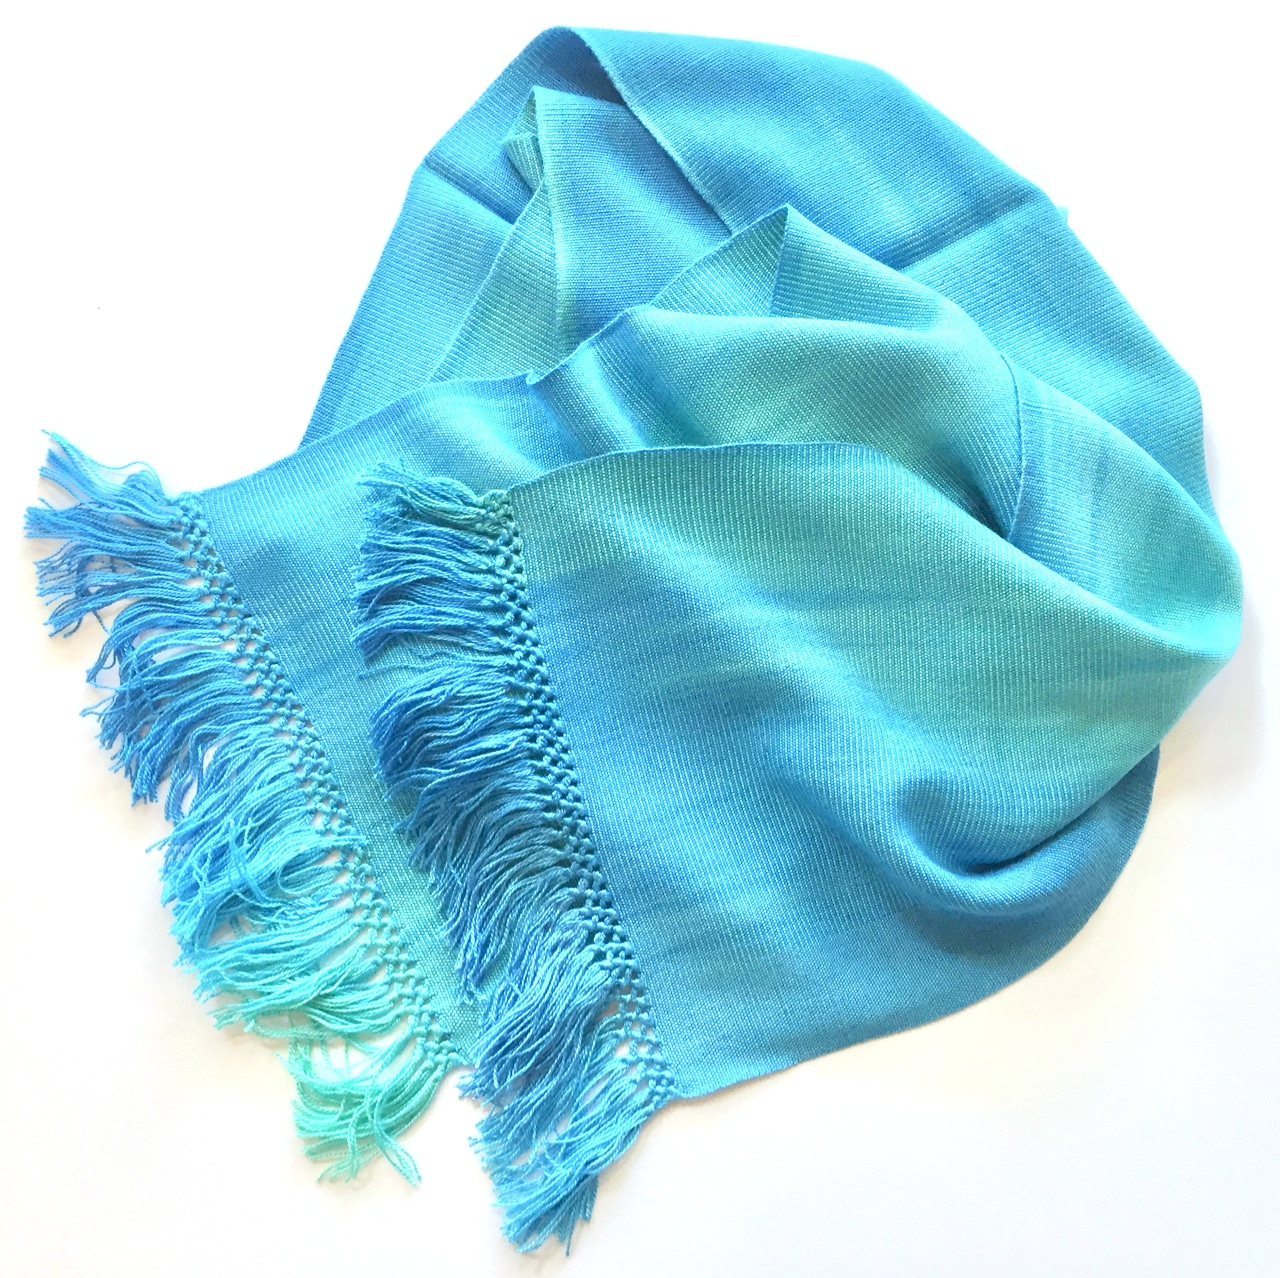 Turquoise, Celestial Blues - Lightweight Bamboo Handwoven Scarf 8 x 68